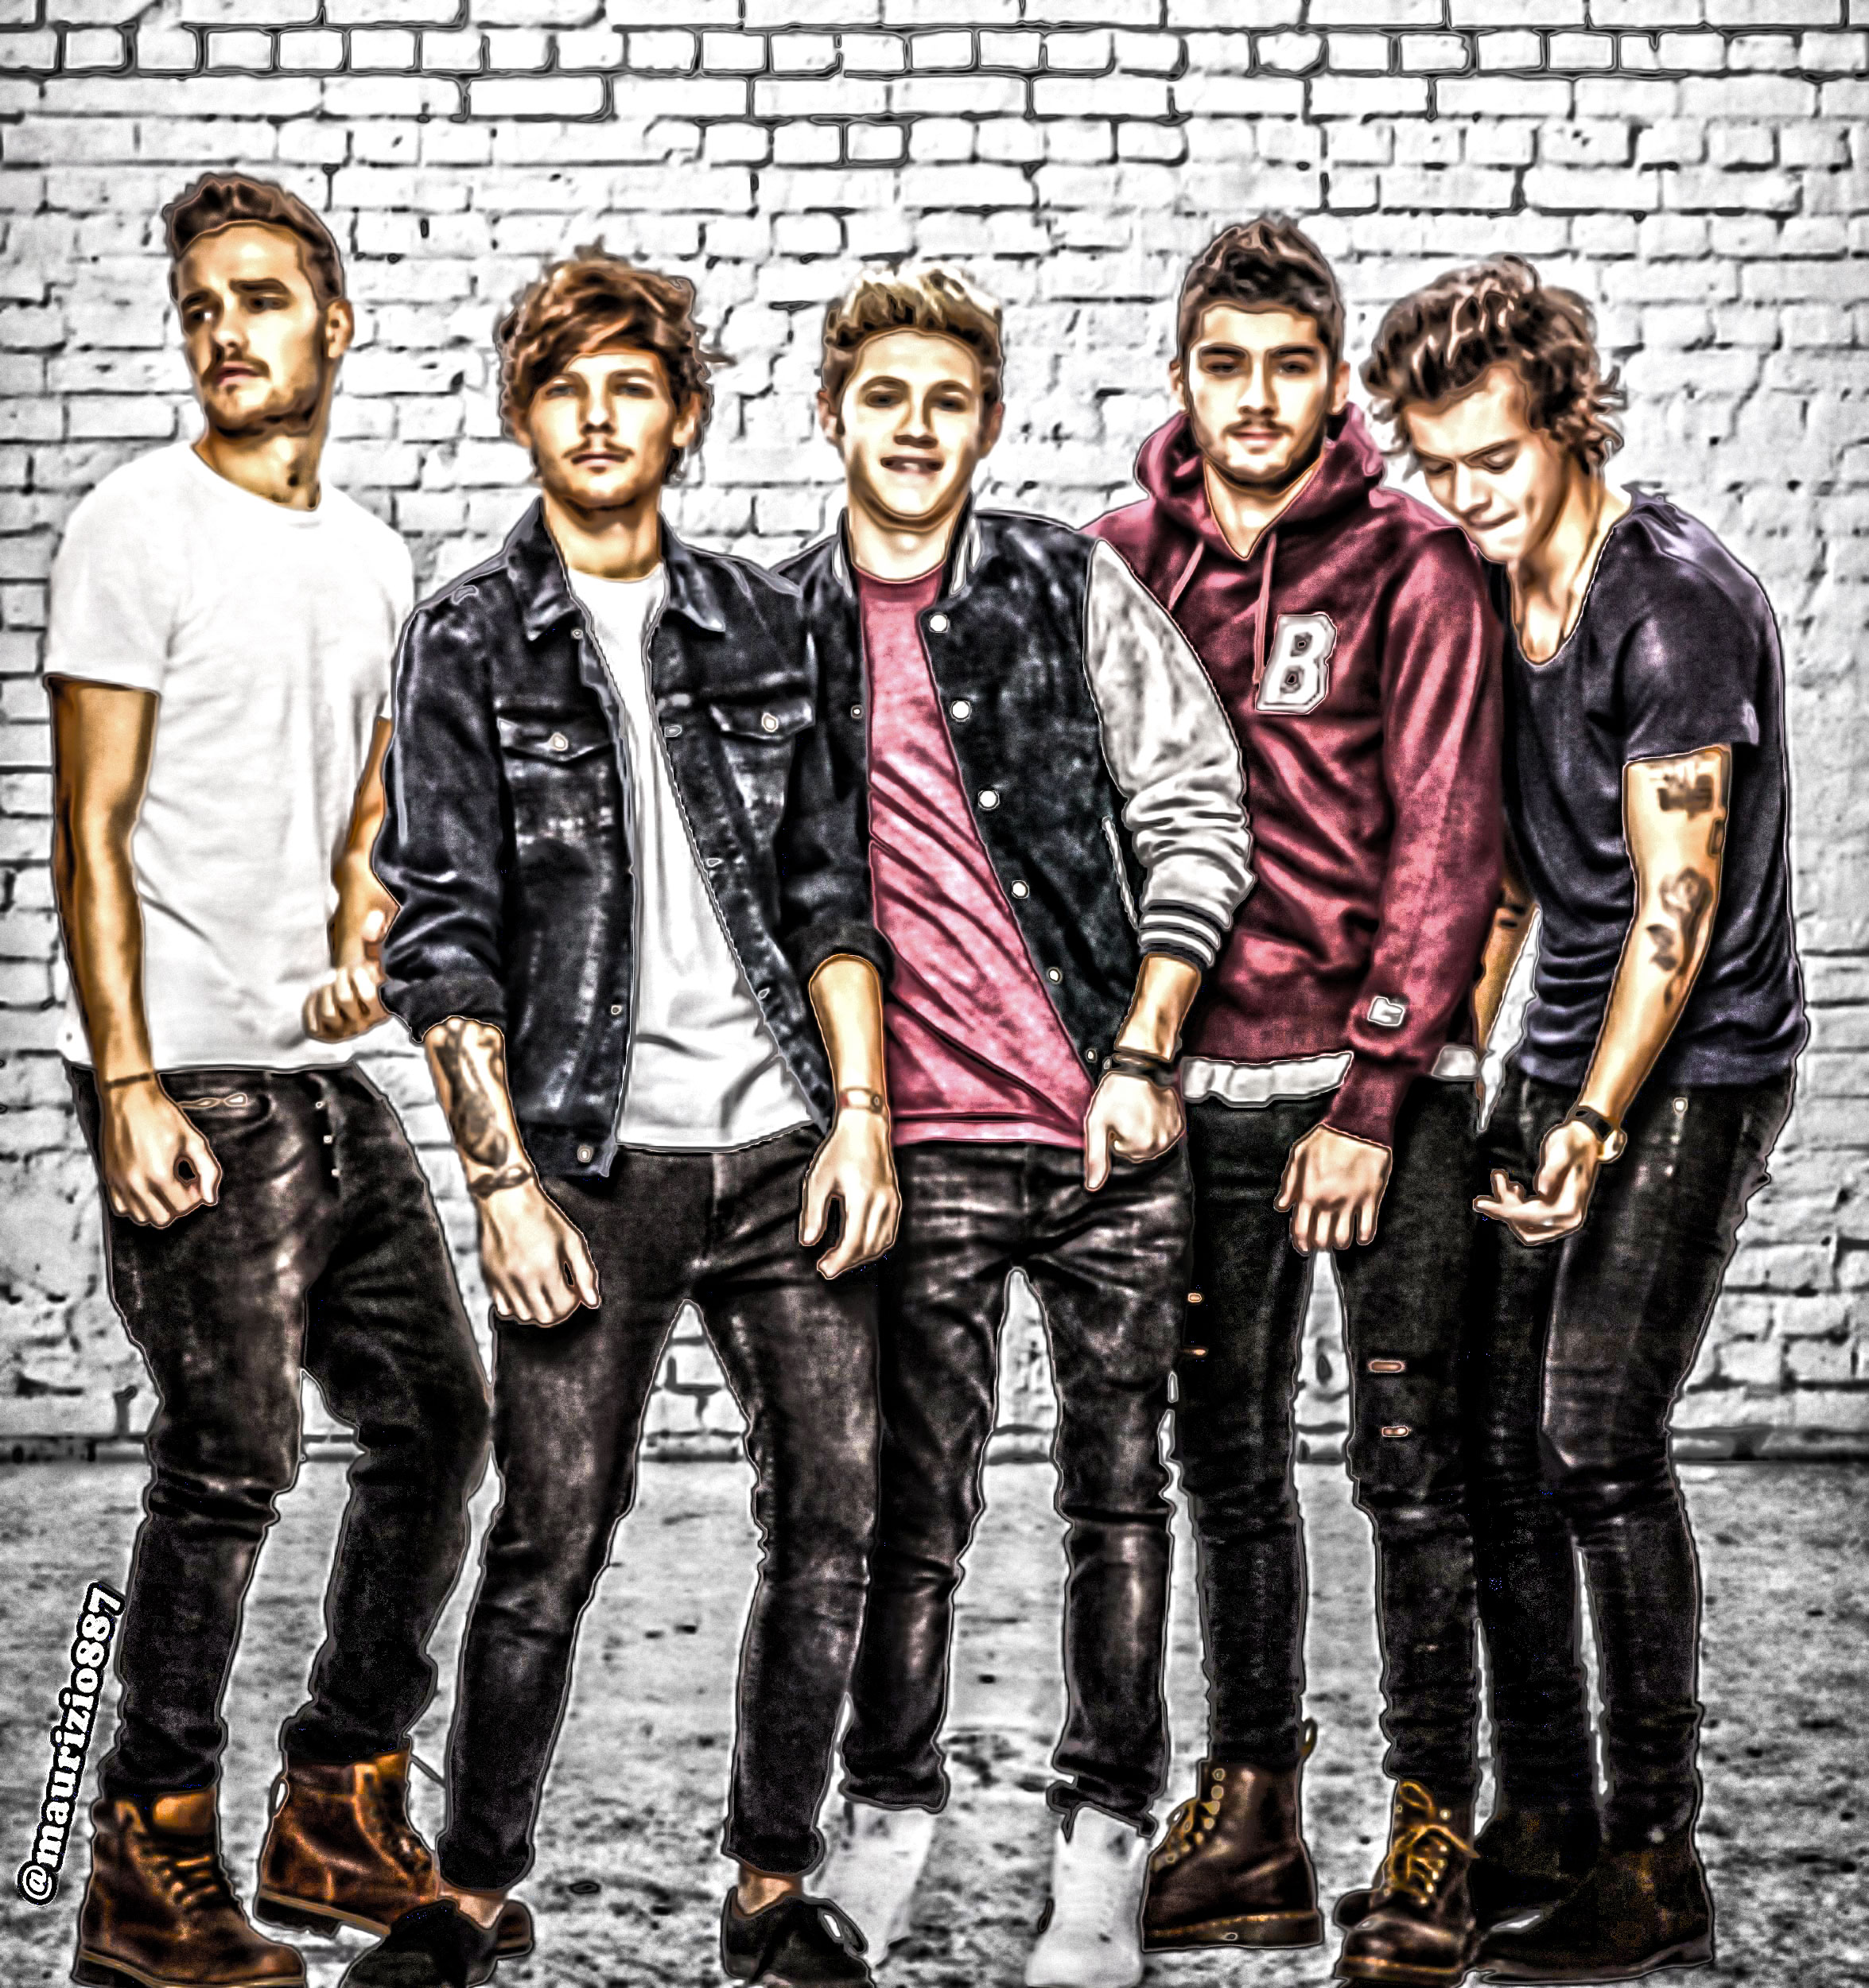 one-direction-photoshoot-2014-one-direction-37089221-2350-2500 jpgOne Direction Photoshoot 2014